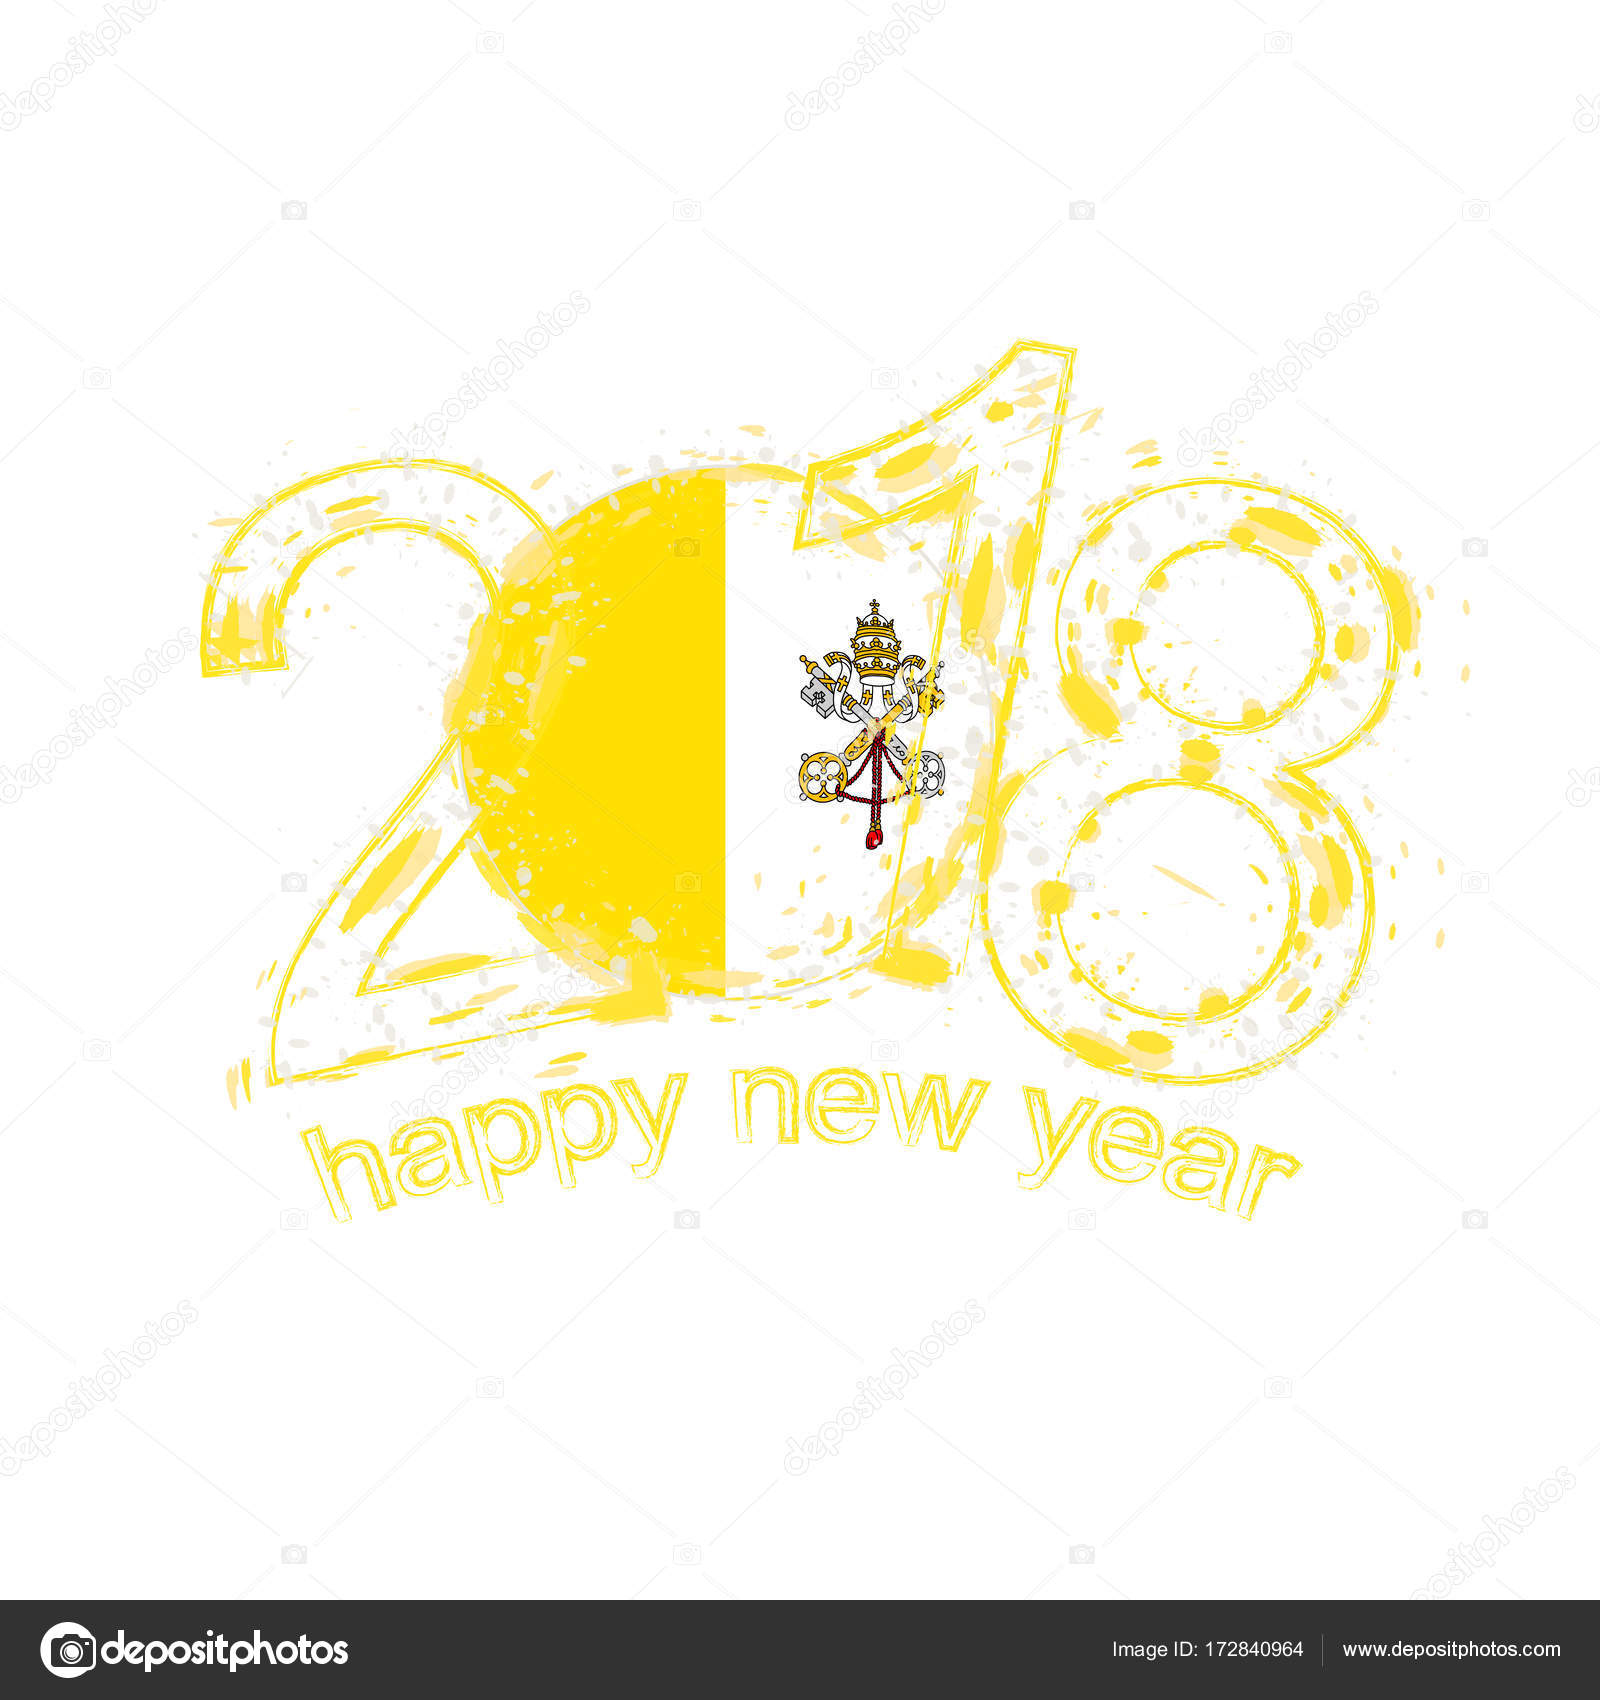 2018 happy new year vatican city grunge vector template for greeting 2018 happy new year vatican city grunge vector template for greeting card calendars 2018 kristyandbryce Images